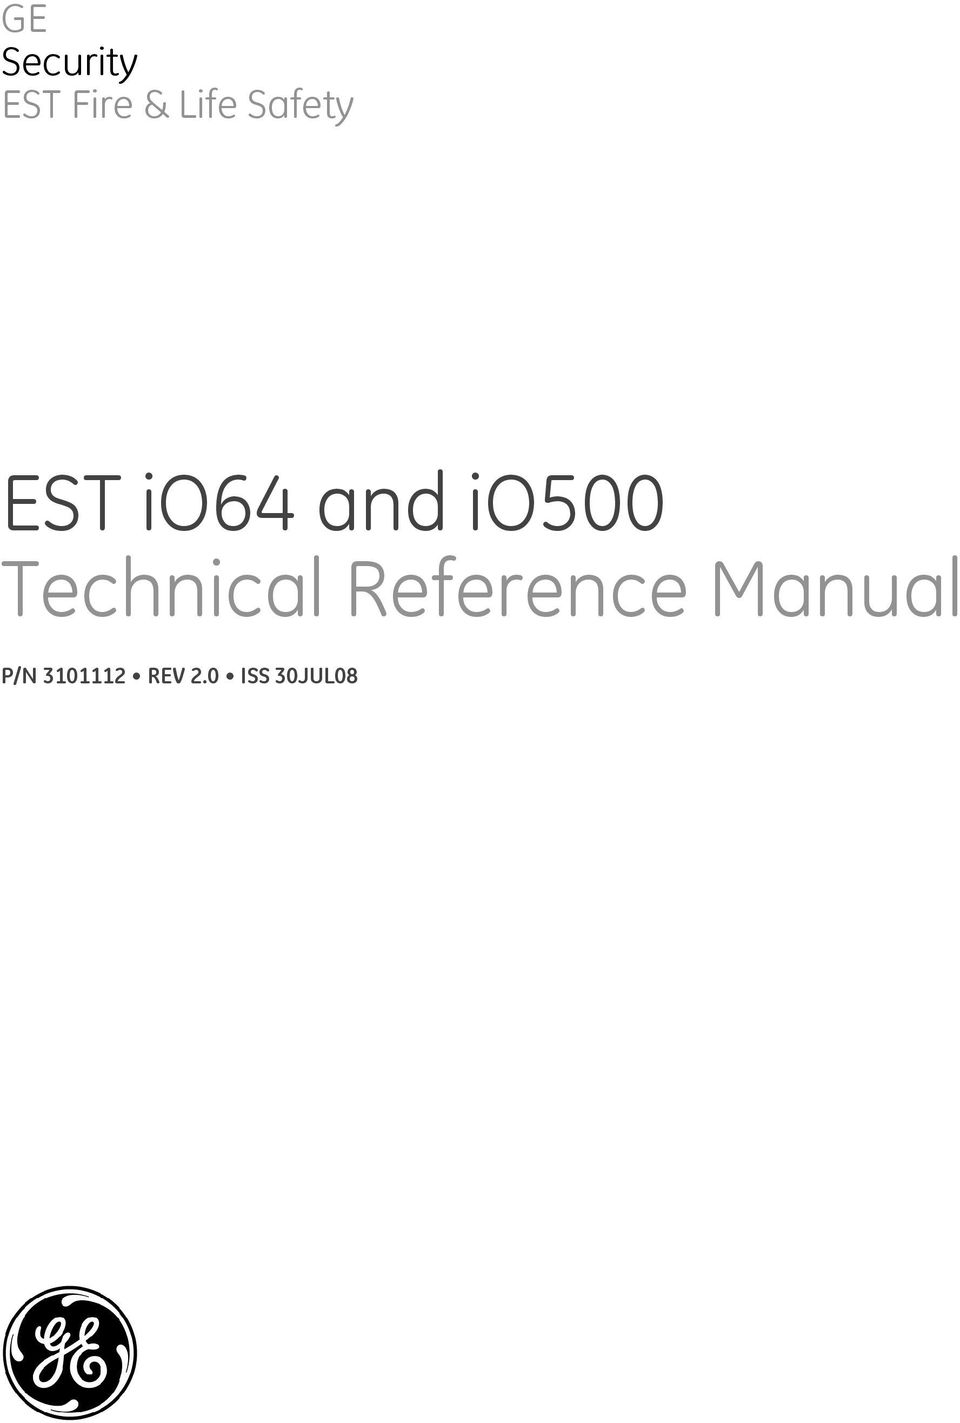 Technical Reference Manual